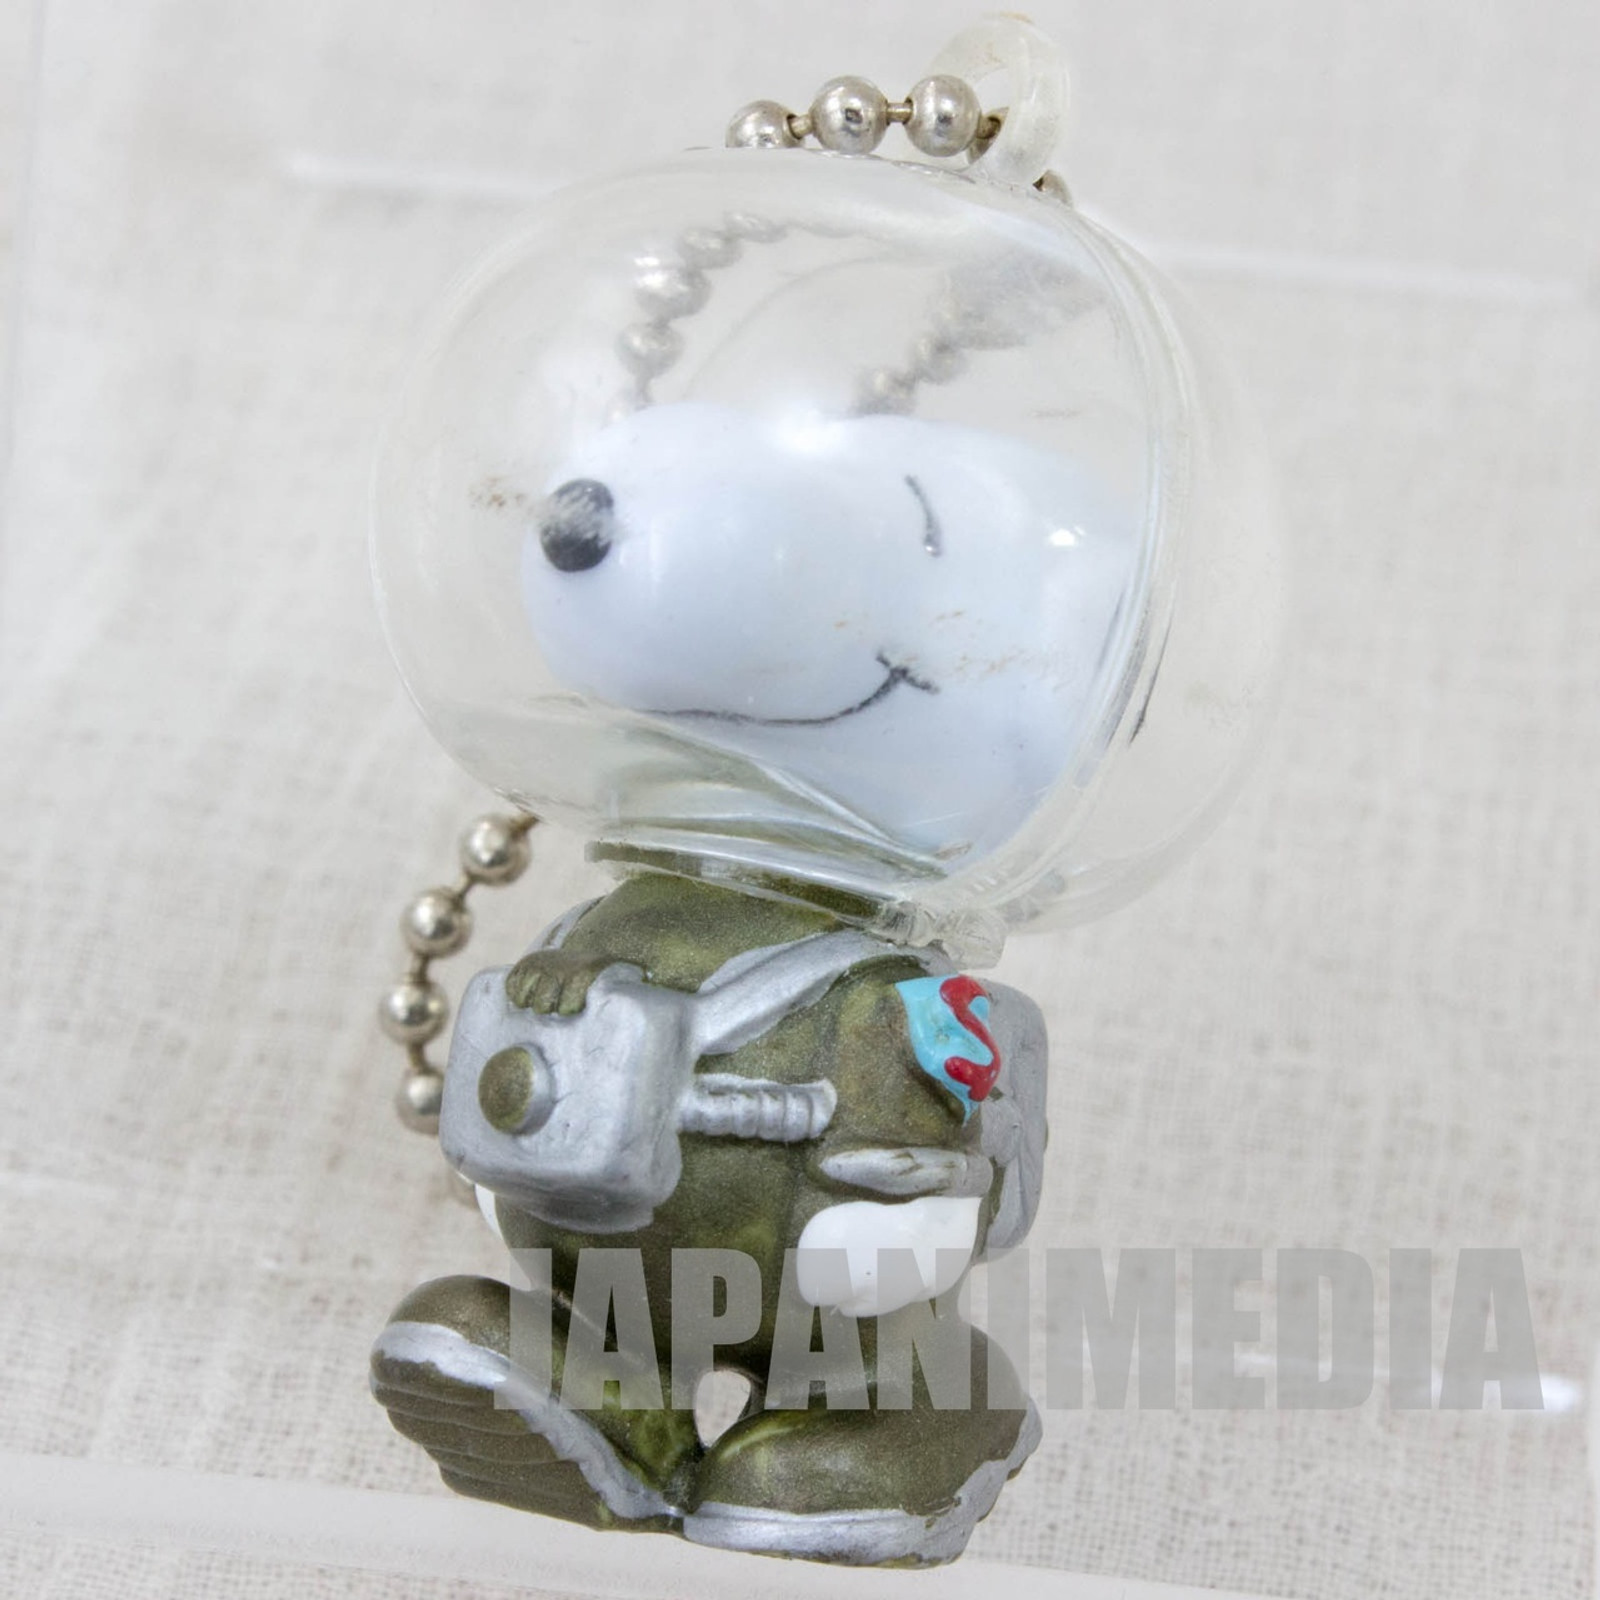 Snoopy Astronauts Figure Ball Key Chain Toy Figure JAPAN PEANUTS #2